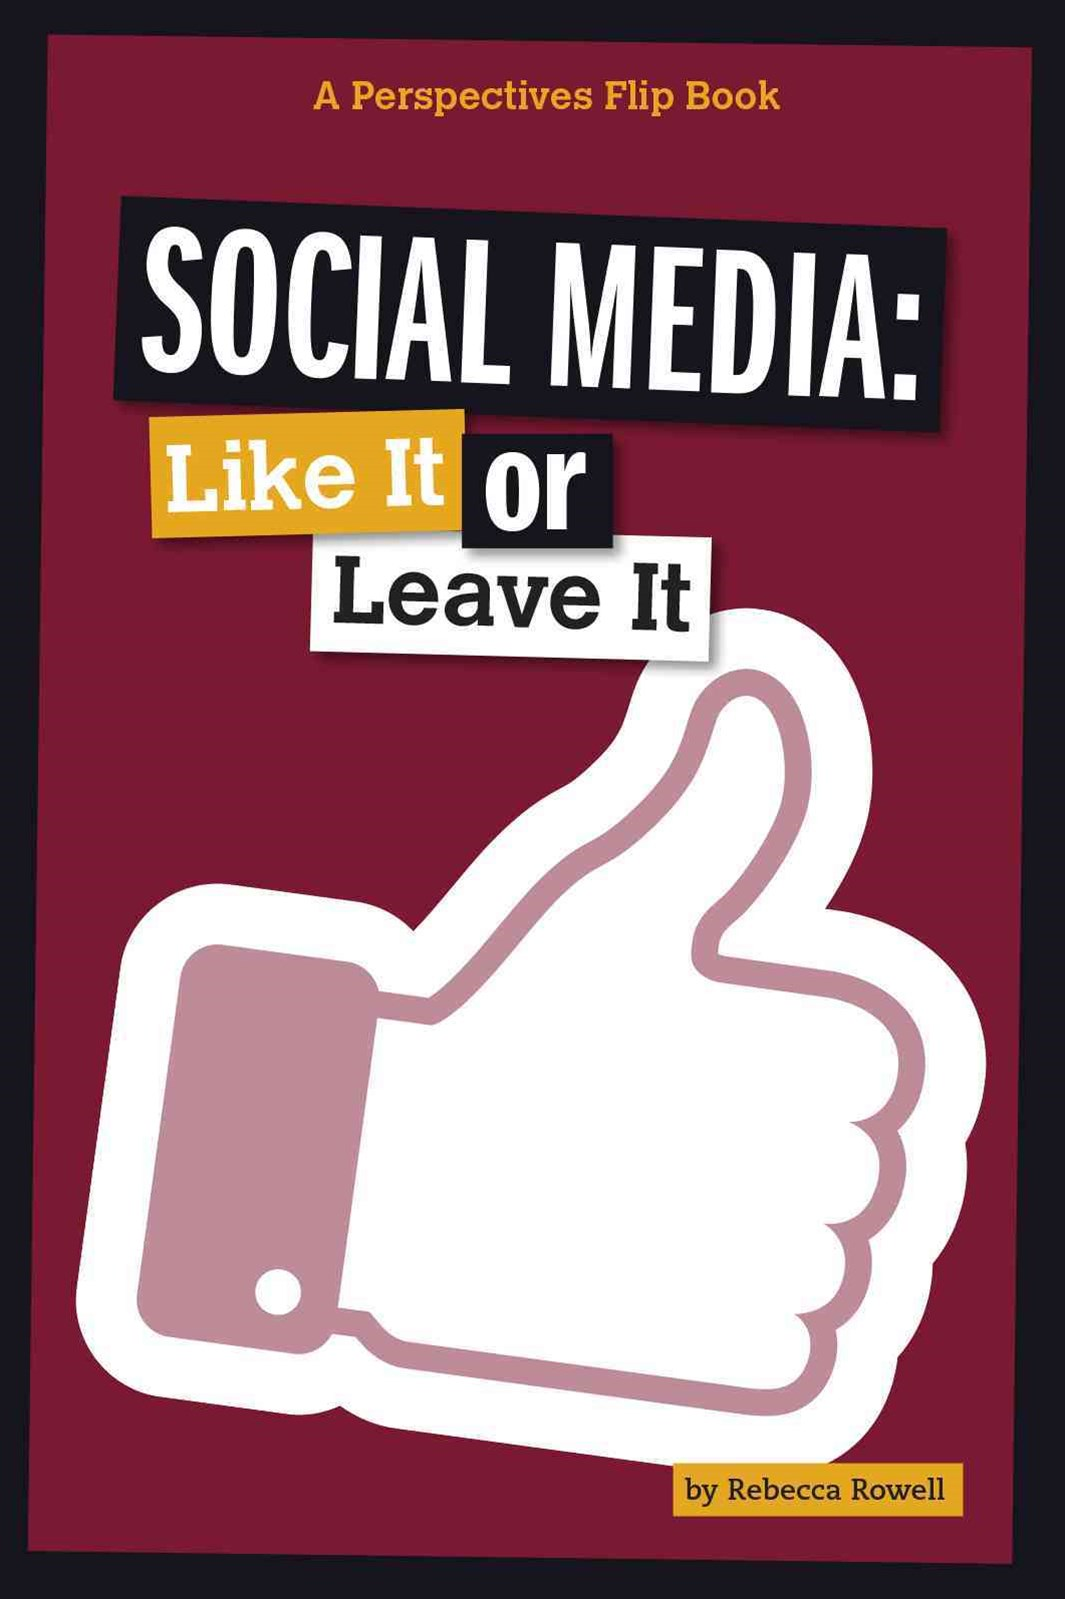 Social Media: Like It or Leave It